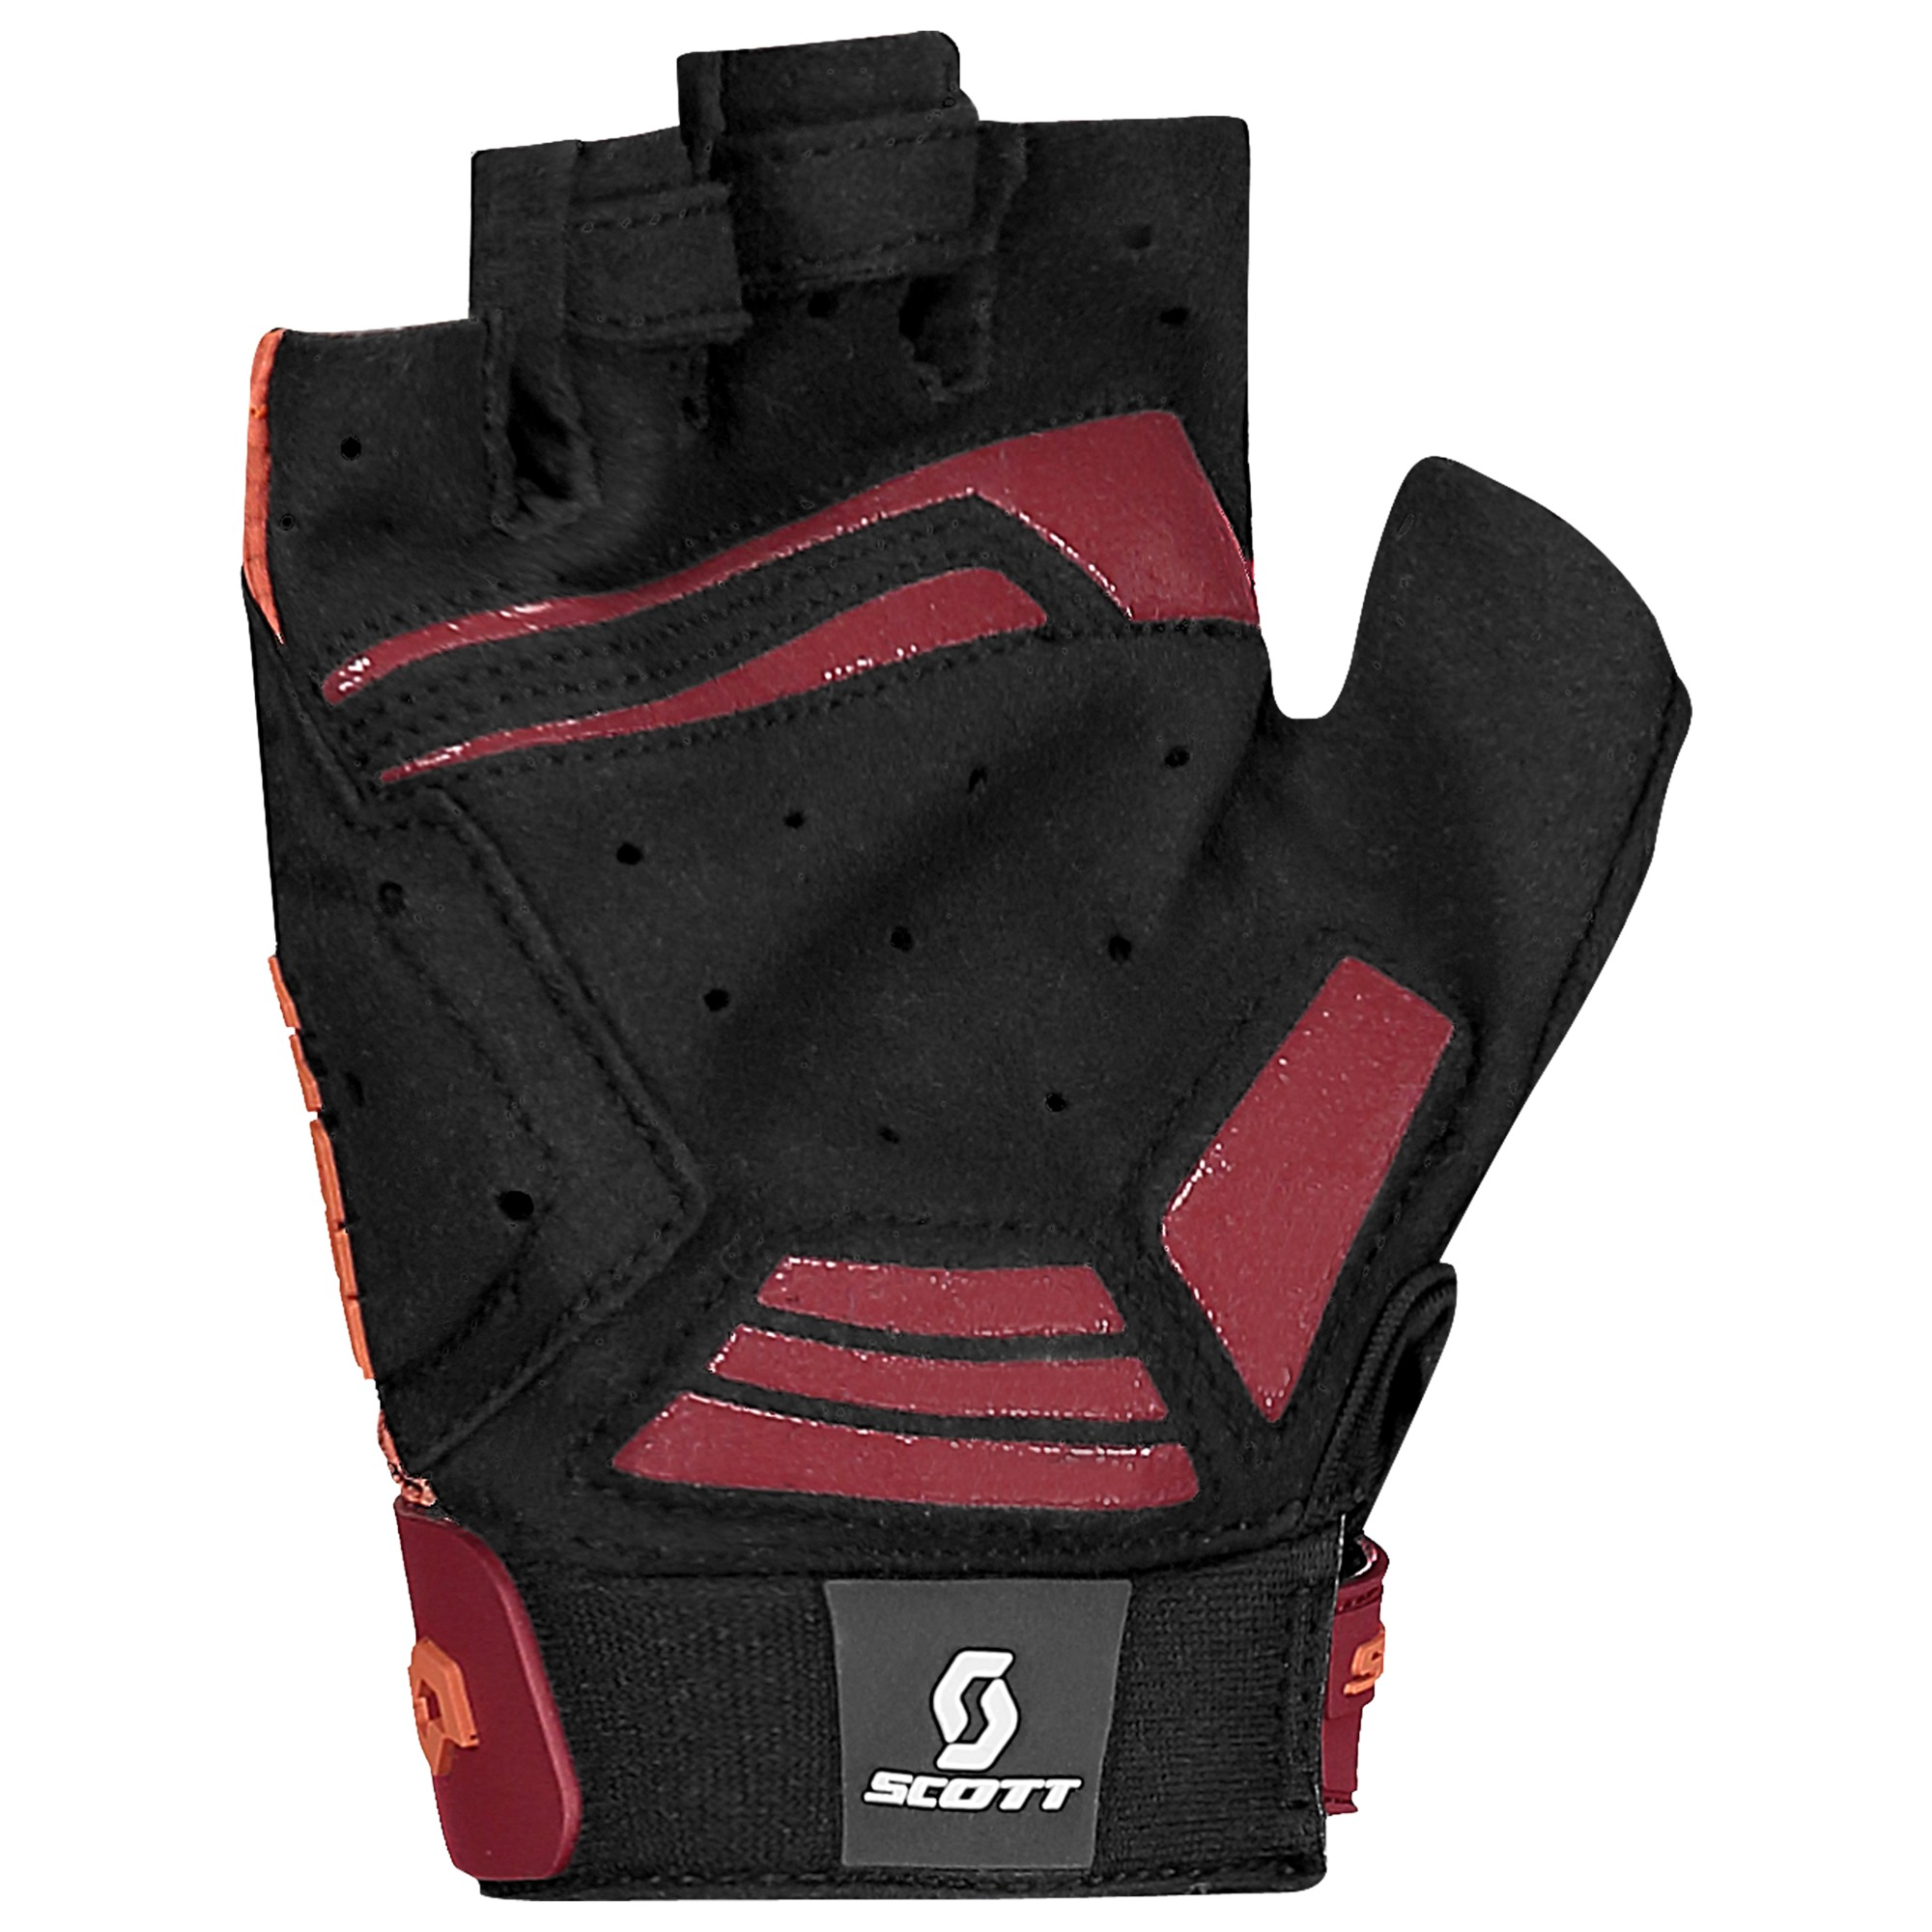 SCOTT Perform Gel SF Glove